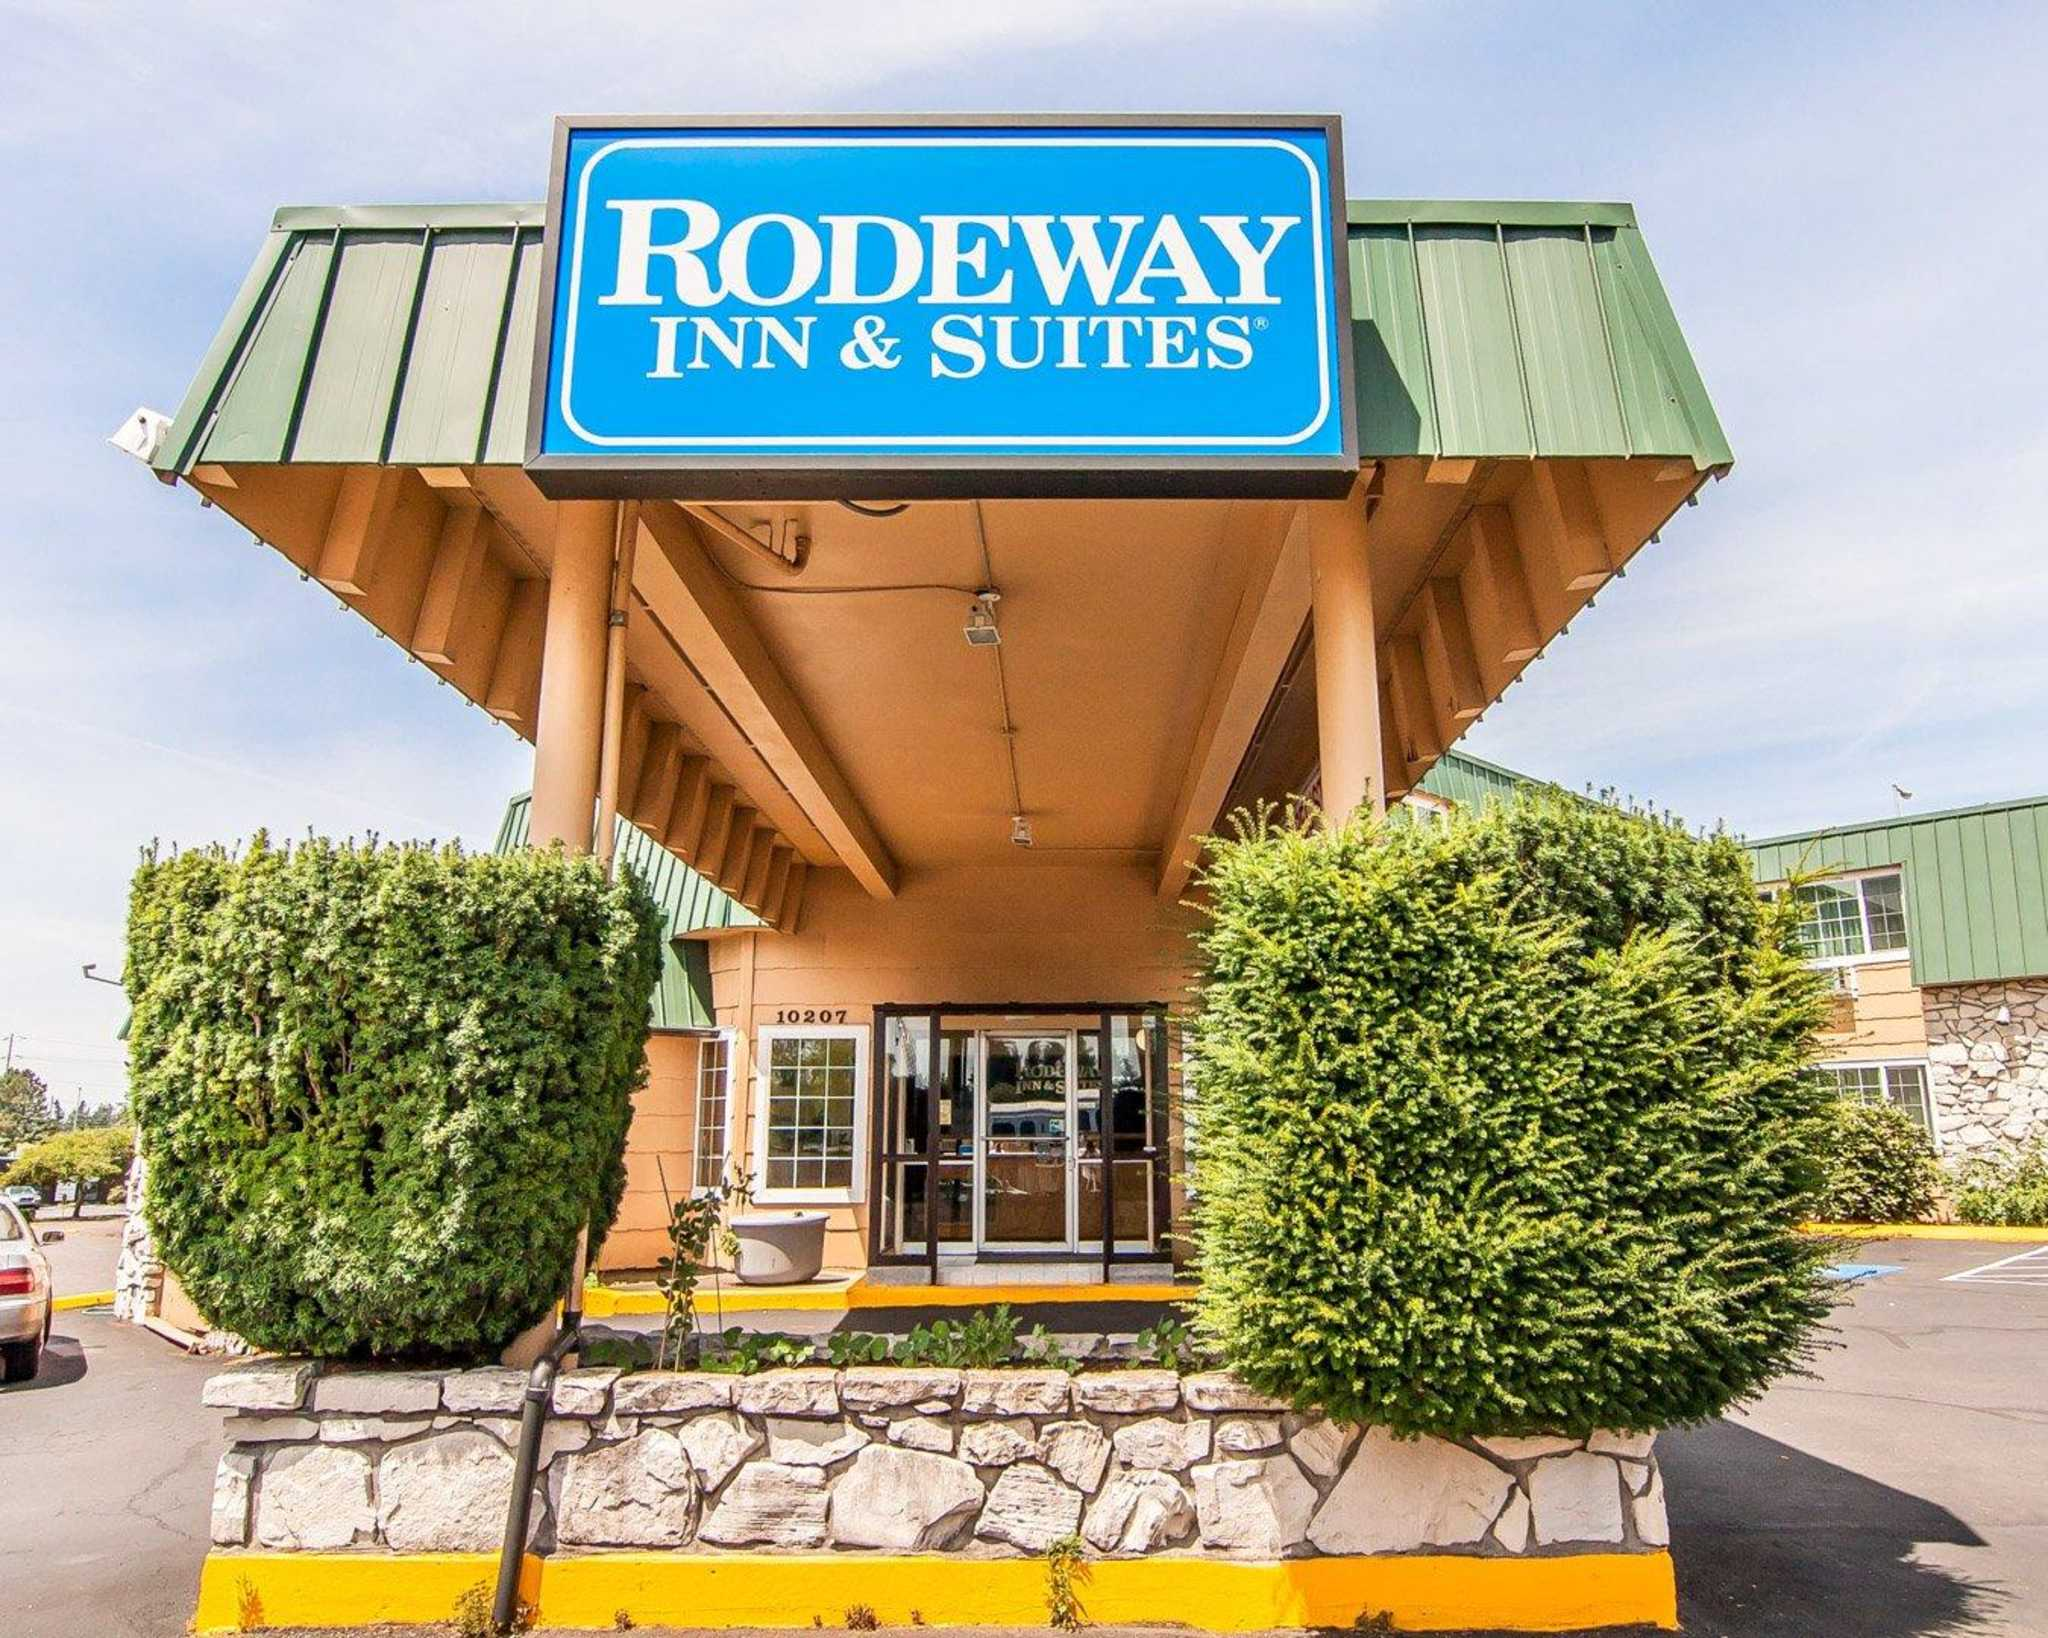 Rodeway Inn Convention Center Portland - Guest ReservationsUp To 25% Off This Winter· Excellent Guest Reviews· Best Rate GuaranteedAmenities: 24/7 Guest Servicing, Luxury Amenities, Internet Access, Fast Booking.